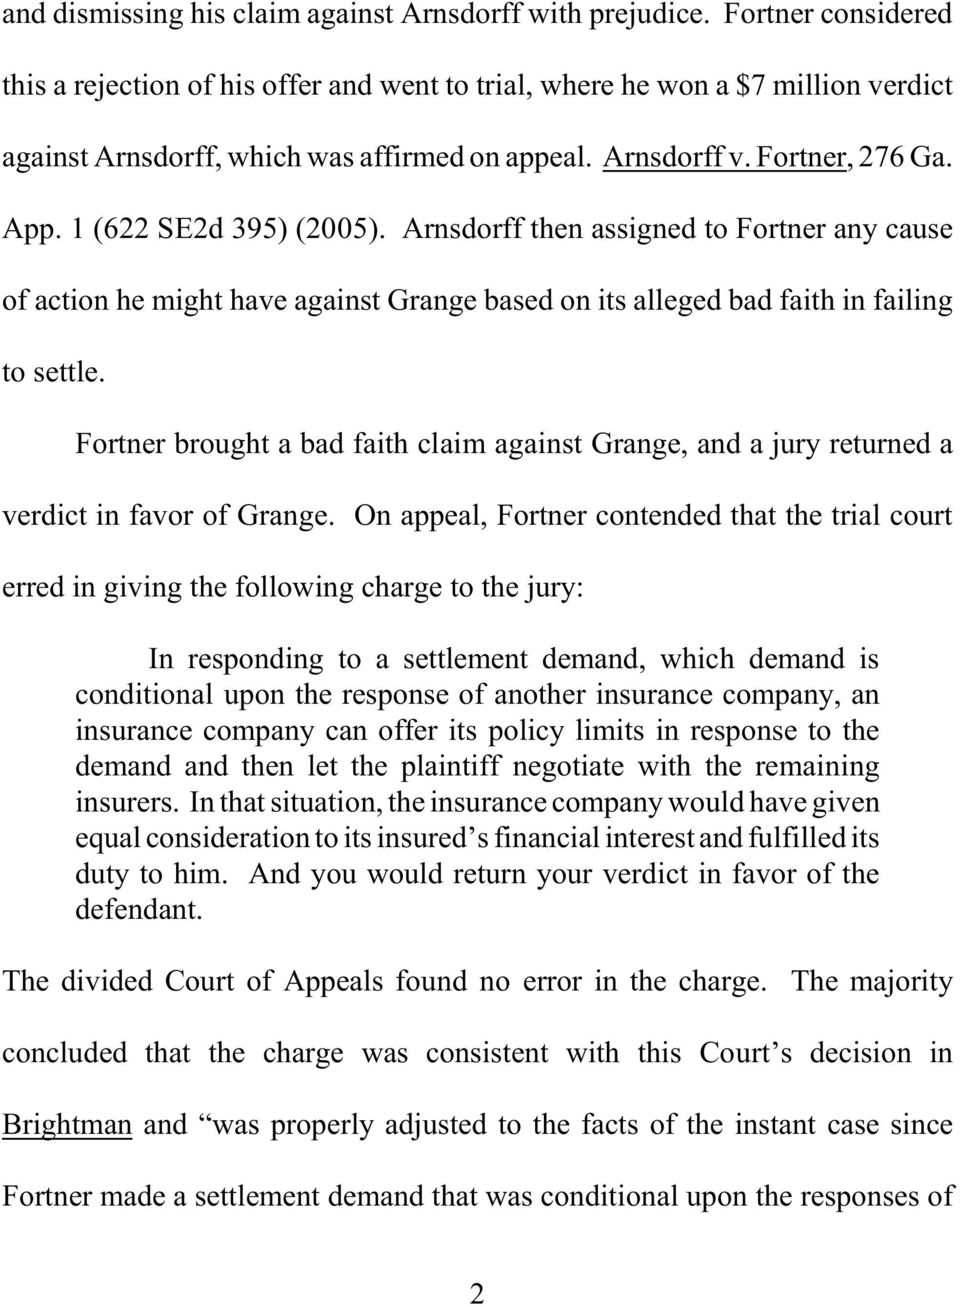 1 (622 SE2d 395) (2005). Arnsdorff then assigned to Fortner any cause of action he might have against Grange based on its alleged bad faith in failing to settle.